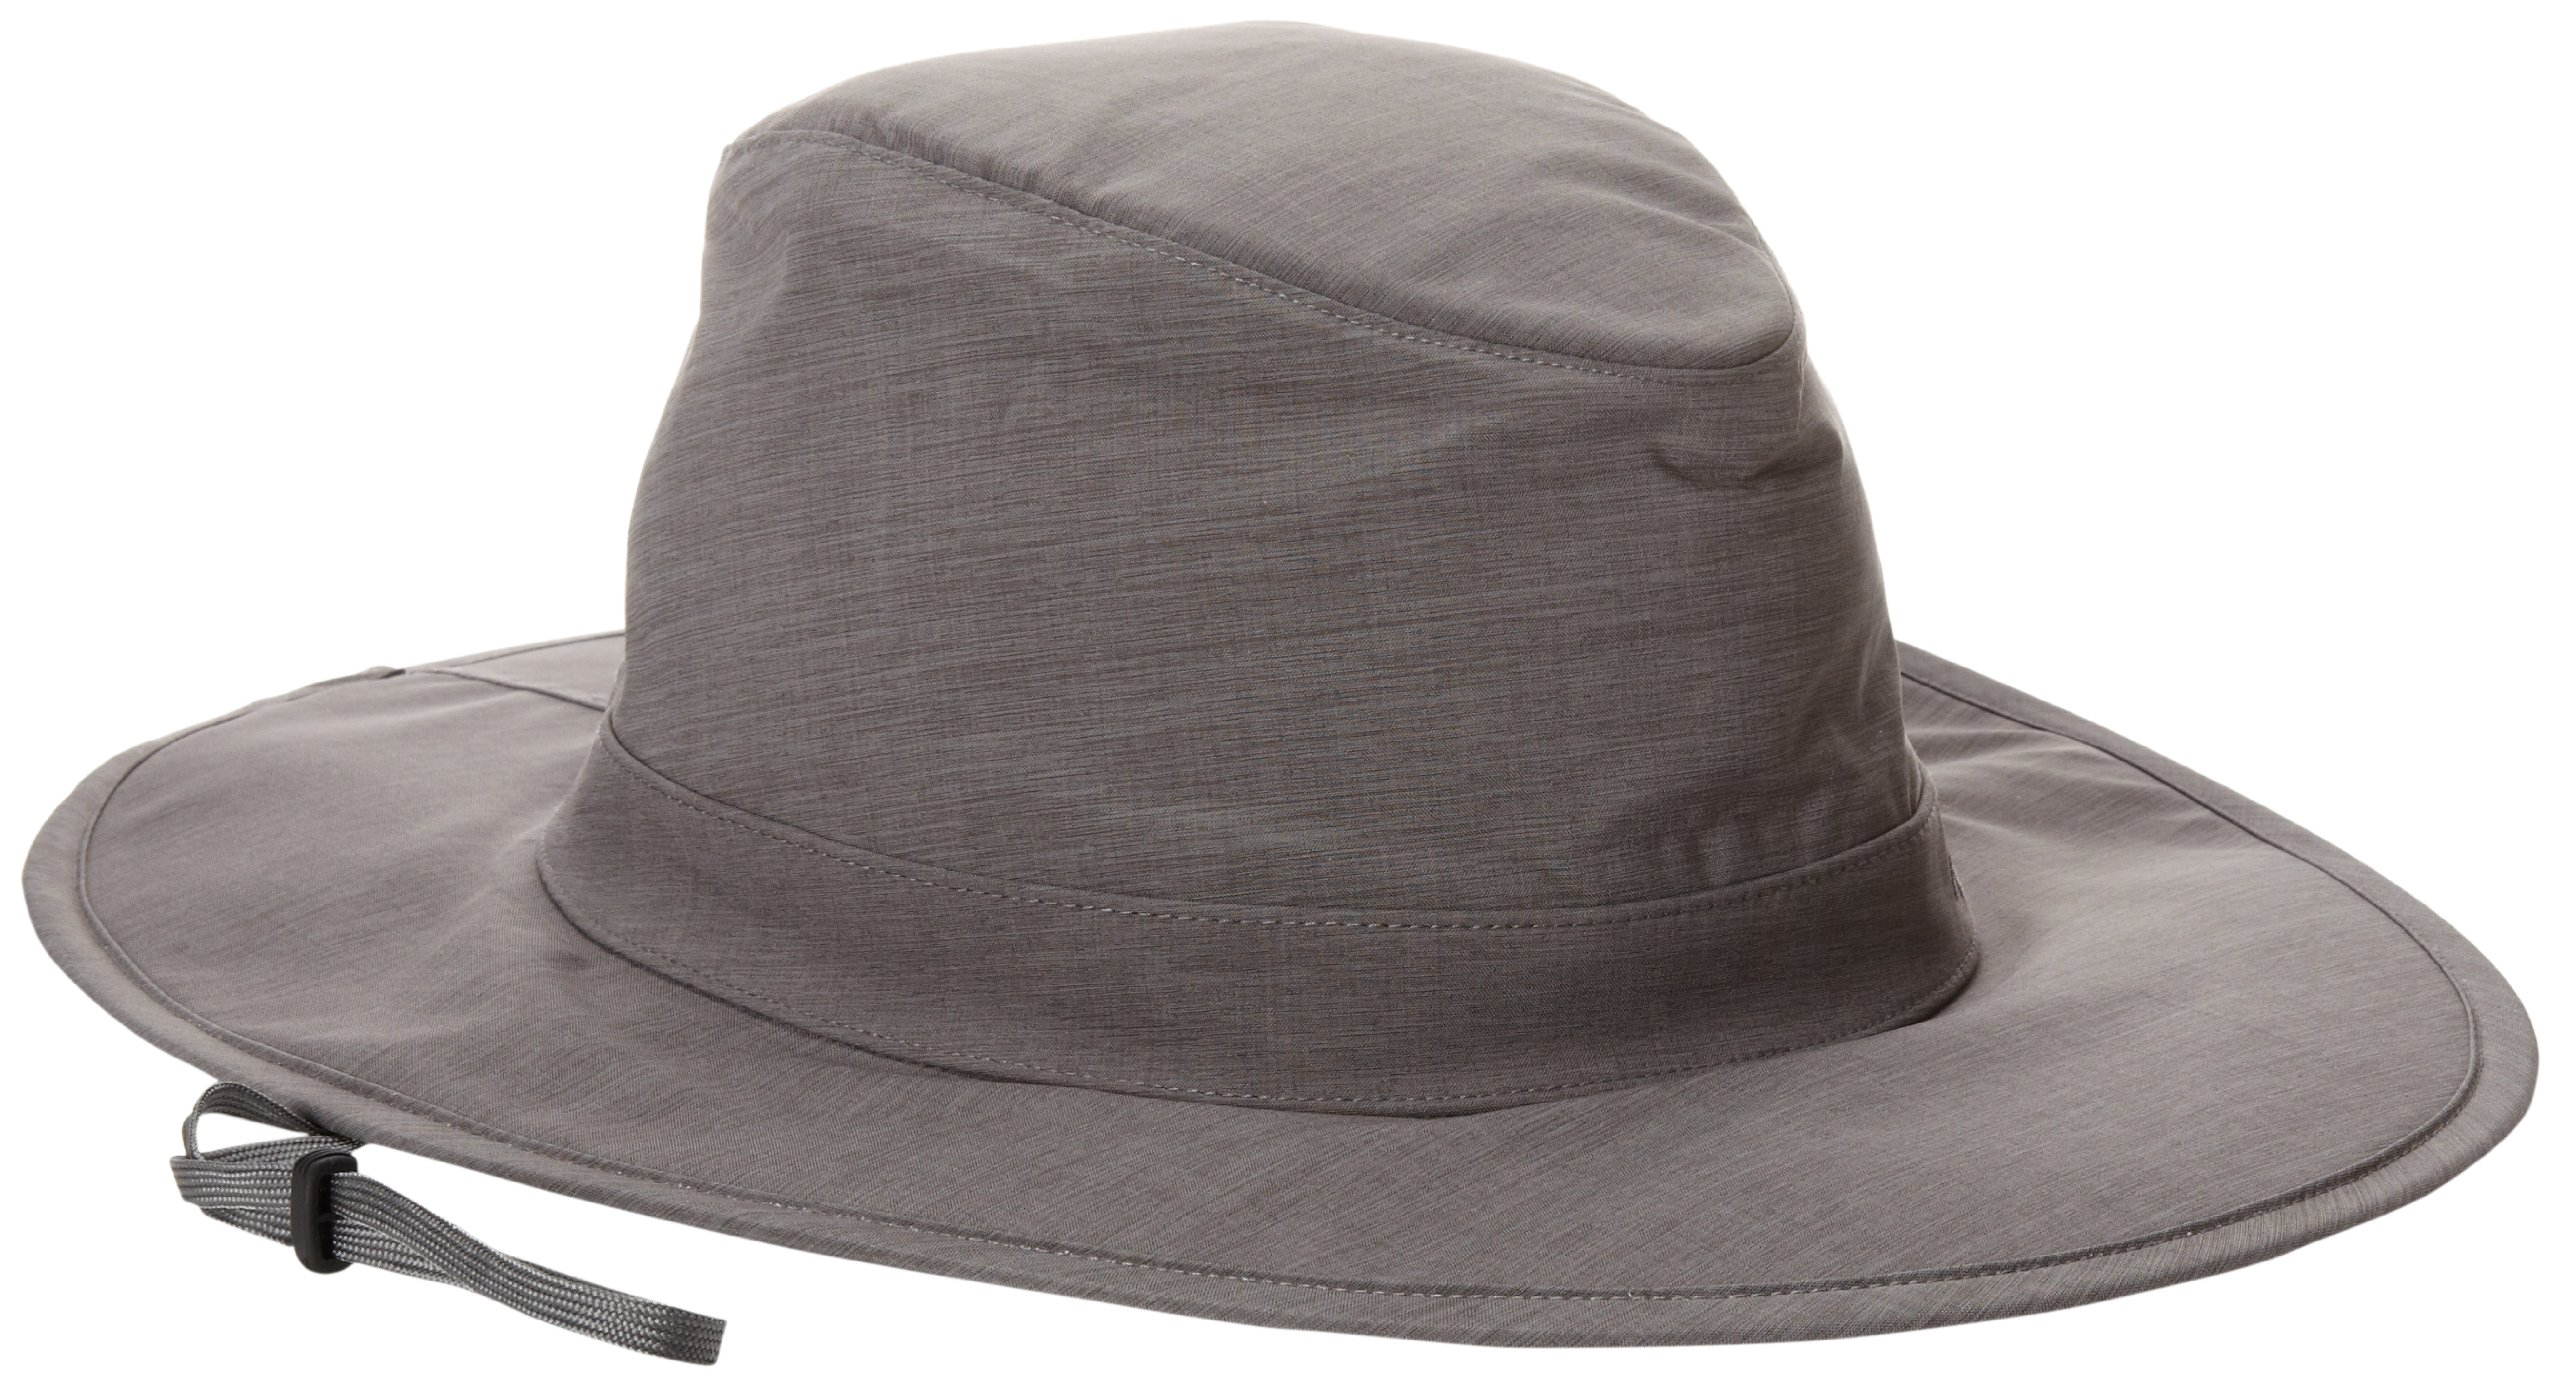 Outdoor Research Olympia Rain Hat, Pewter, Large